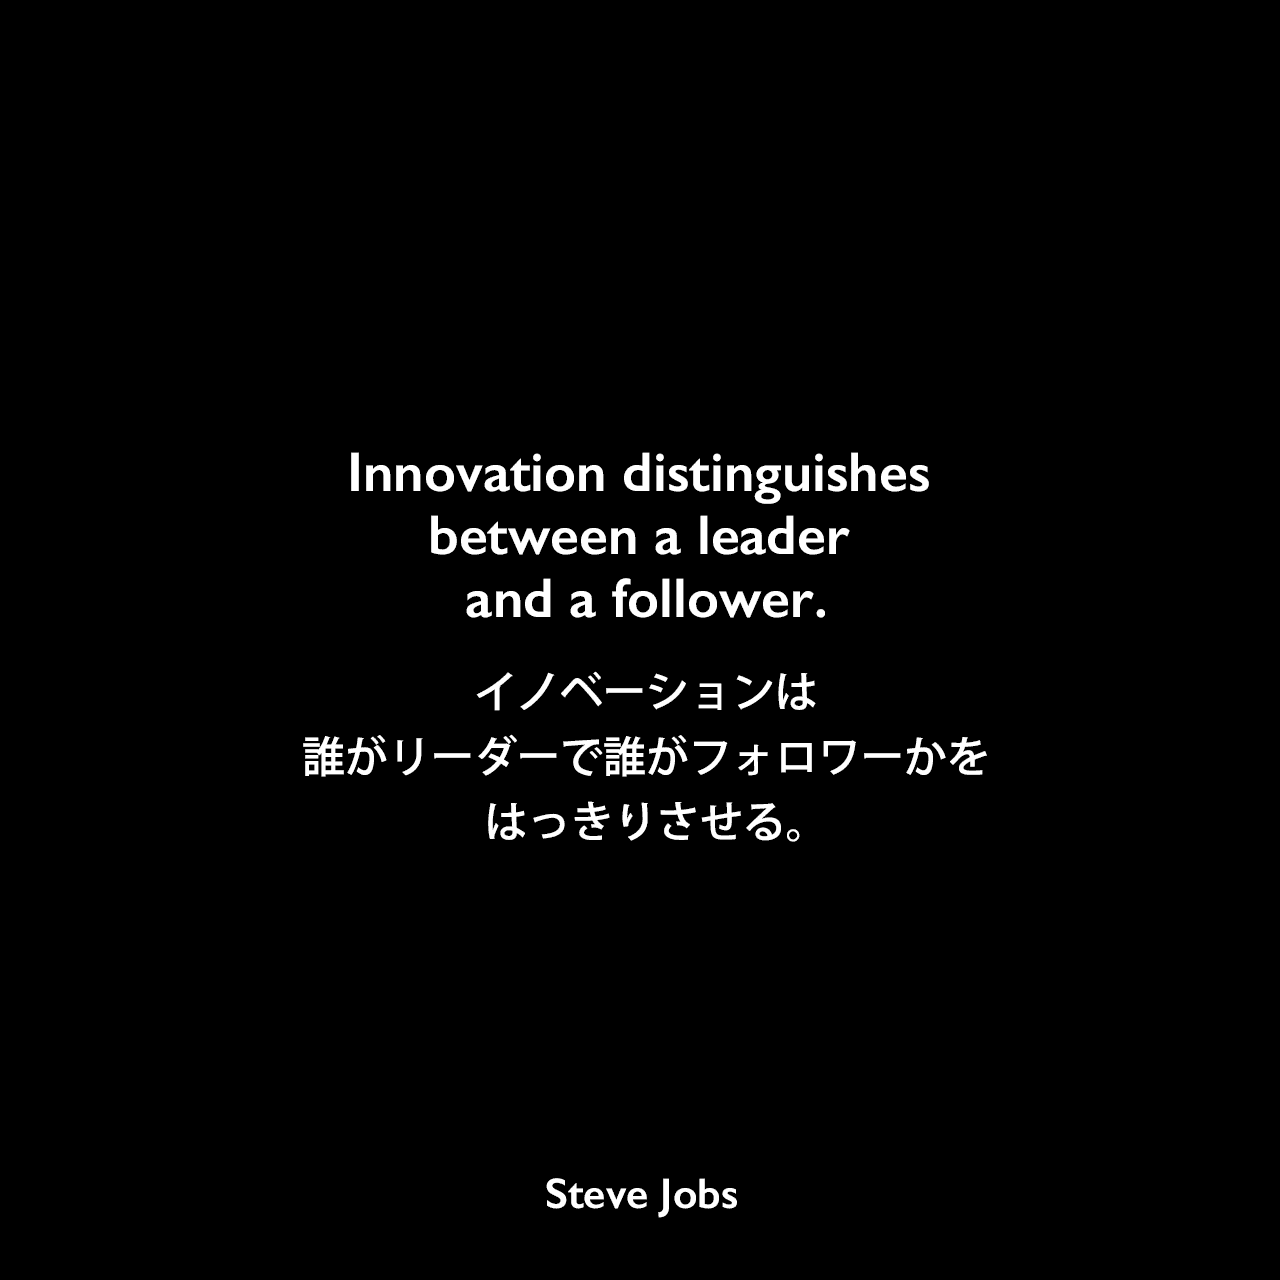 Innovation distinguishes between a leader and a follower.イノベーションは、誰がリーダーで誰がフォロワーかをはっきりさせる。Steve Jobs